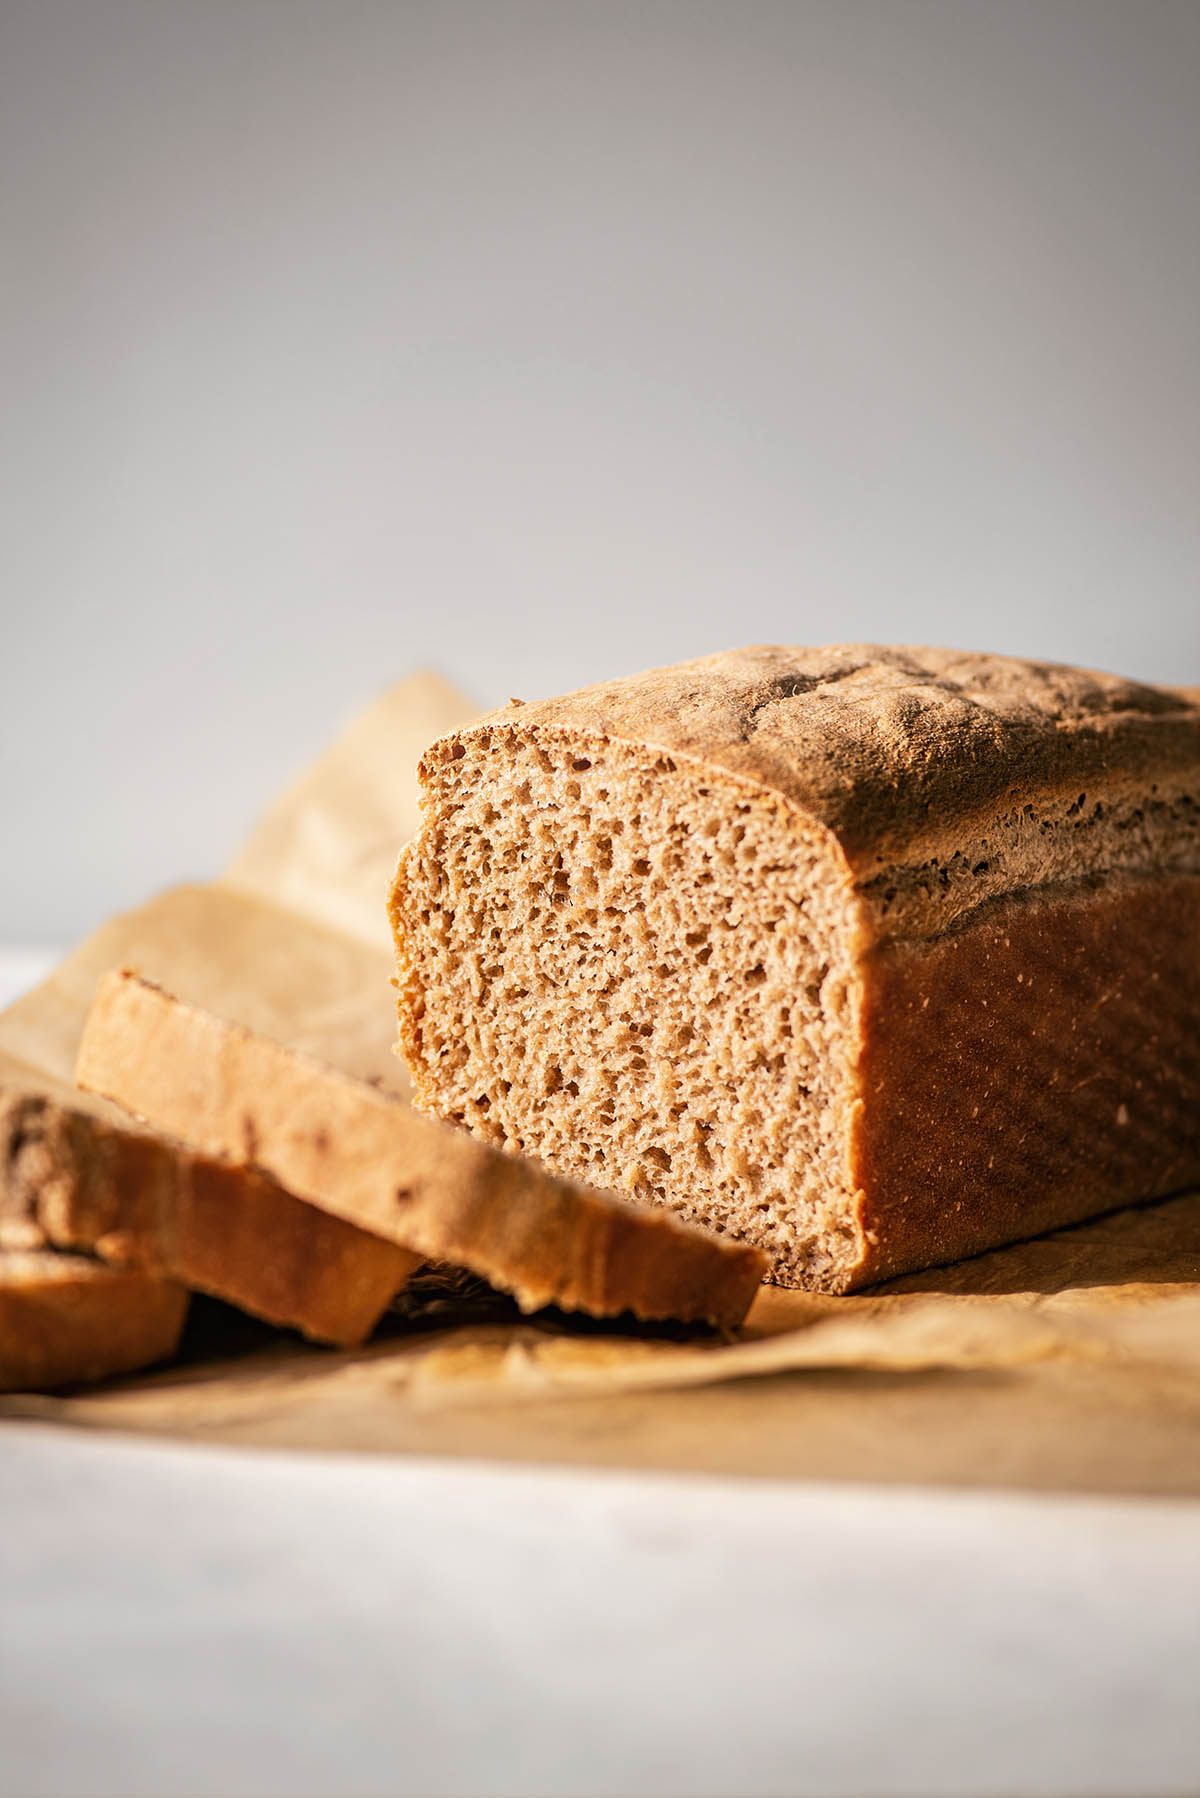 A loaf of sliced bread.